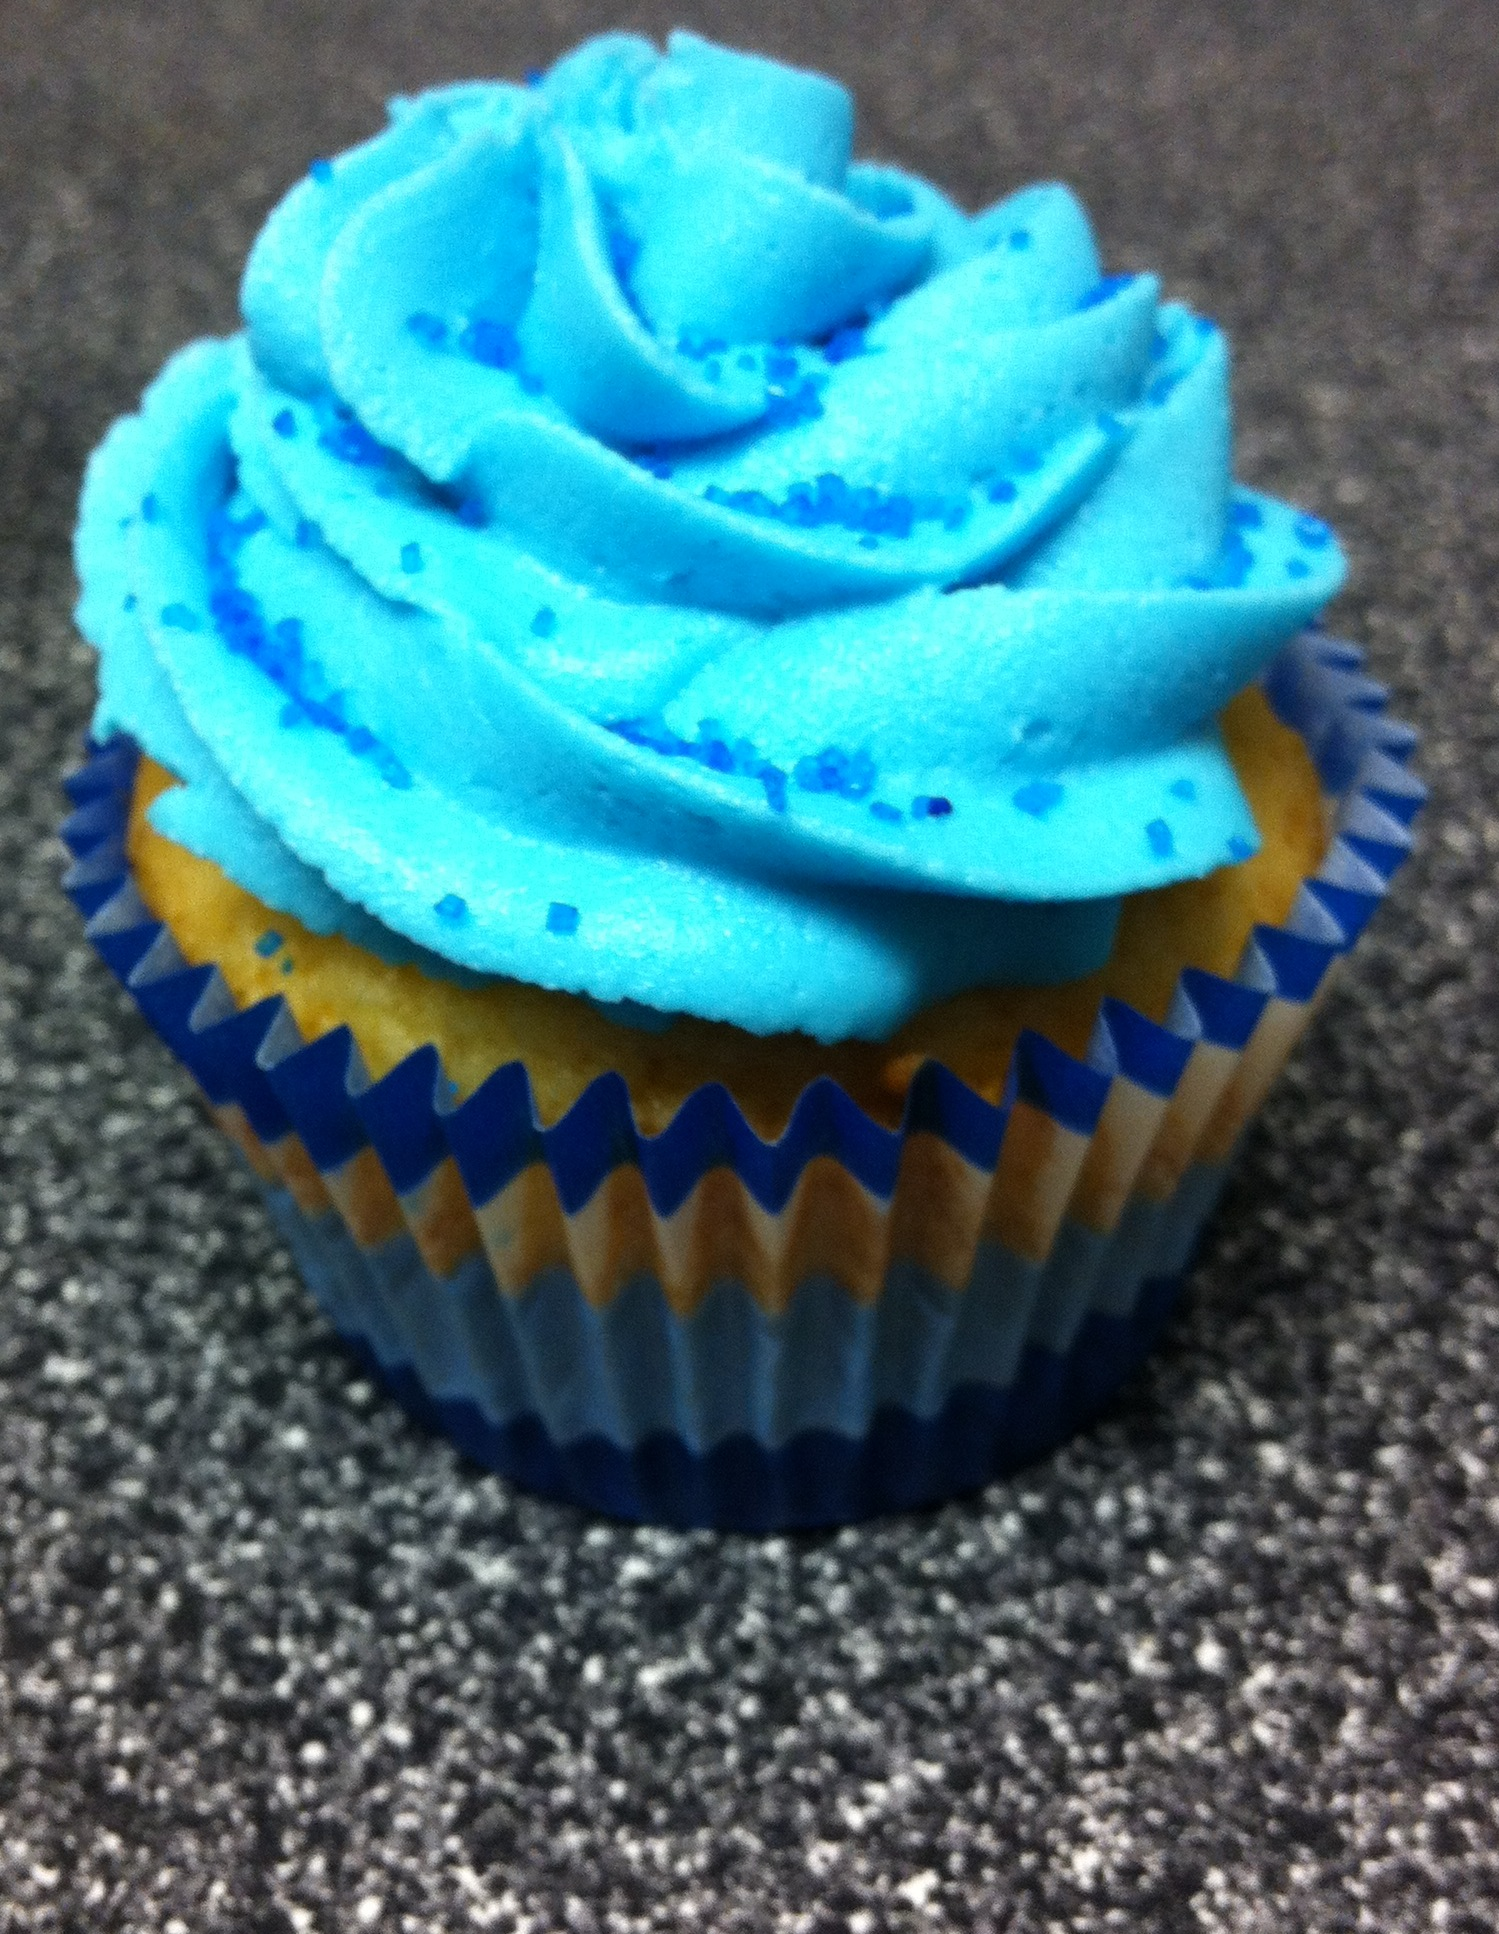 blue frosting cupcakes